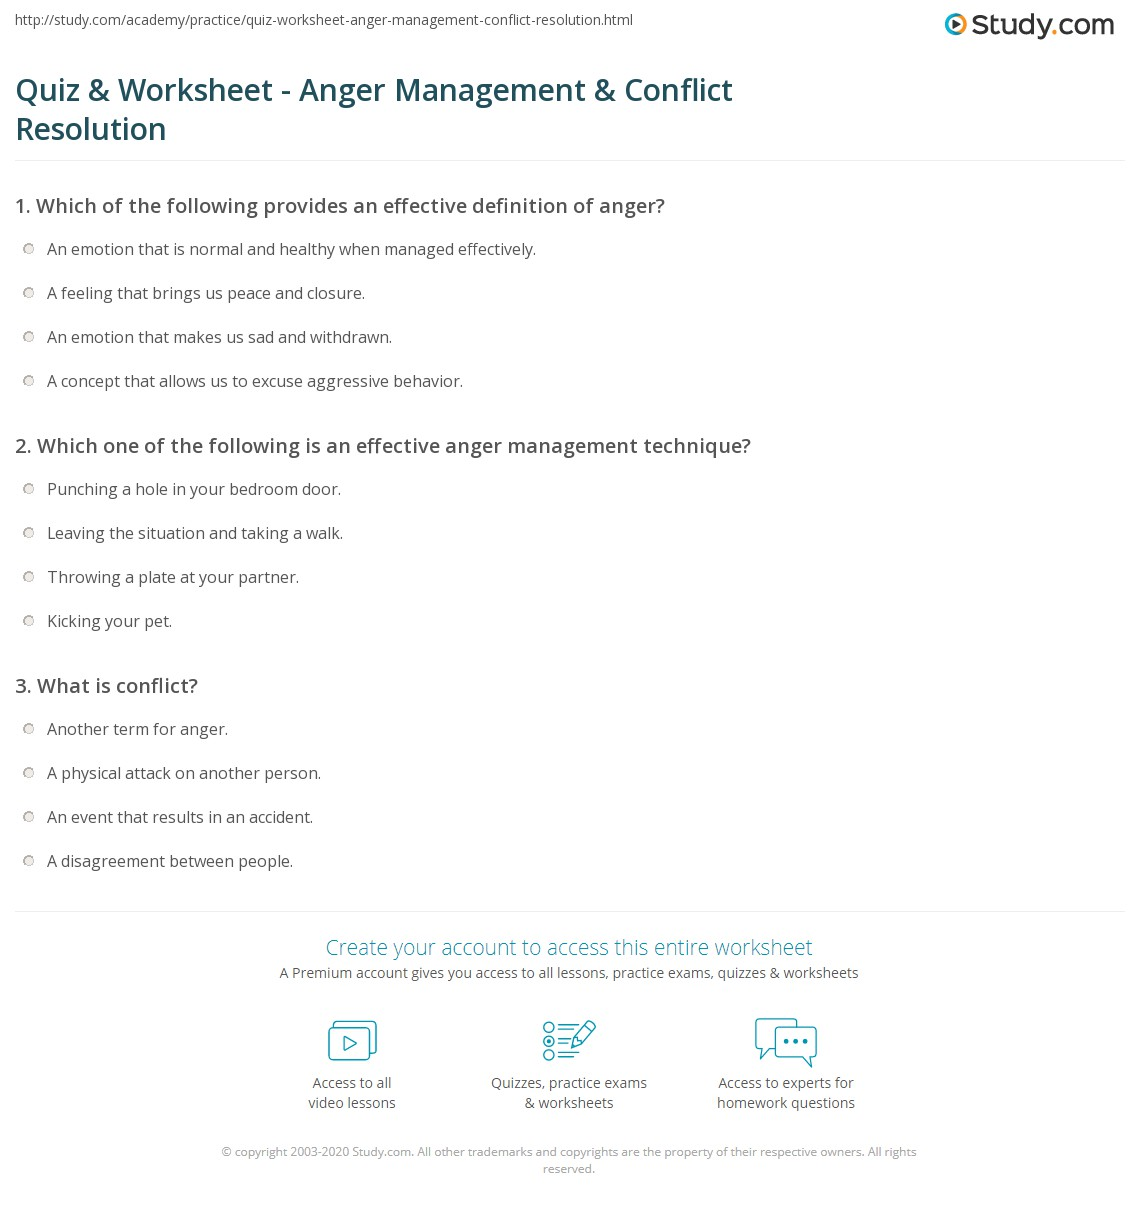 photo about Anger Management Quiz Printable identify Quiz Worksheet - Anger Regulate Conflict Remedy